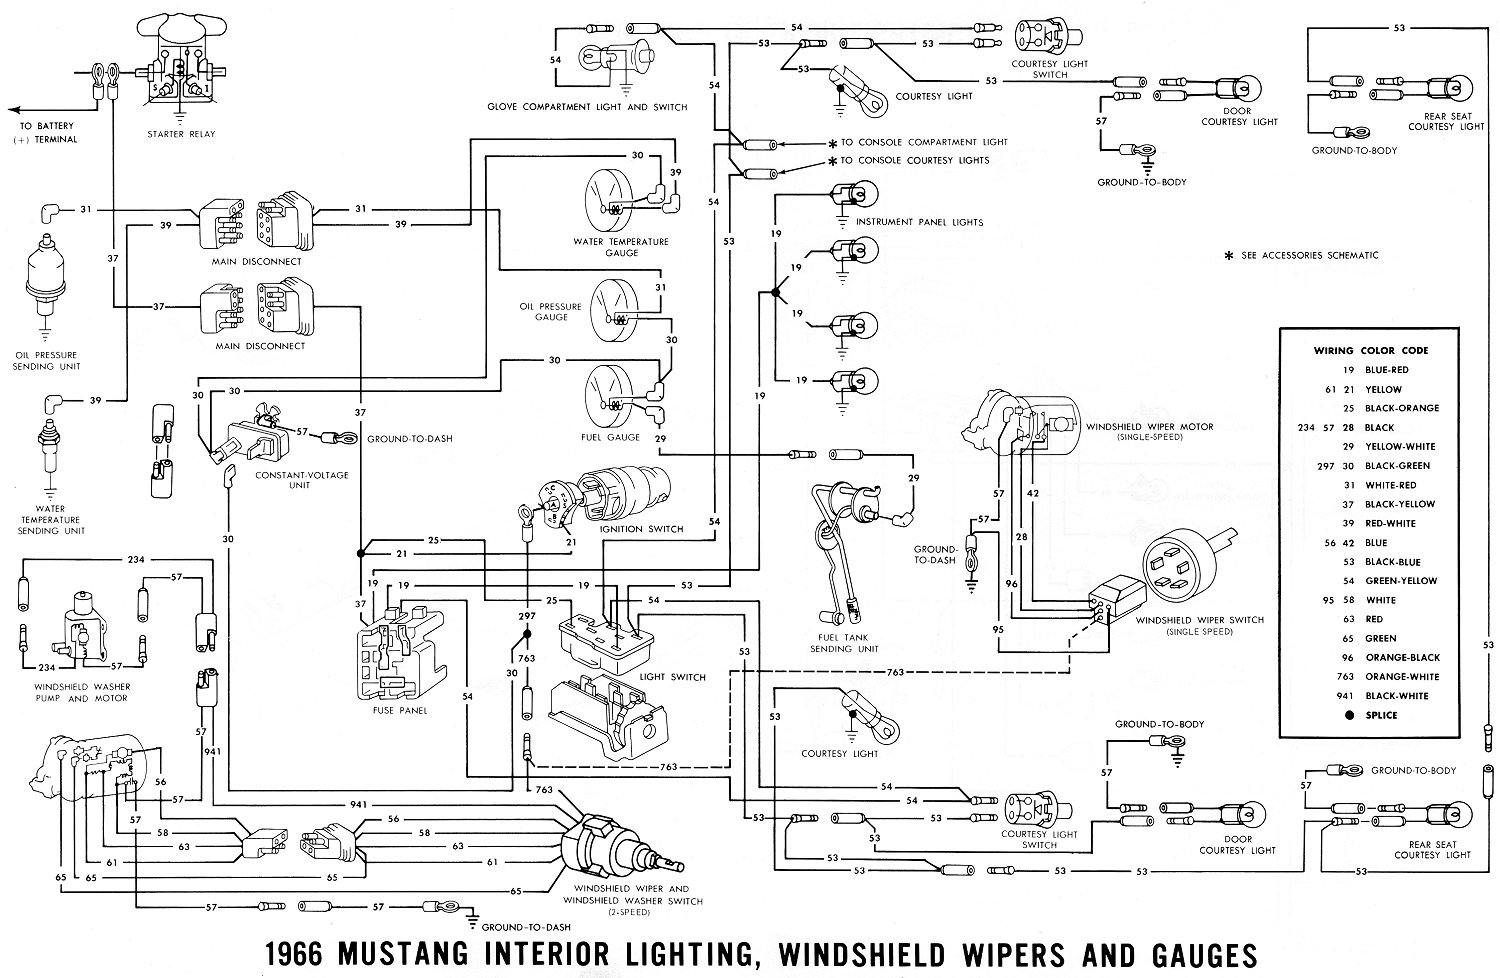 1966 mustang wiring diagrams - average joe restoration 1966 mustang cluster wiring diagram 1966 mustang radio wiring diagram #3